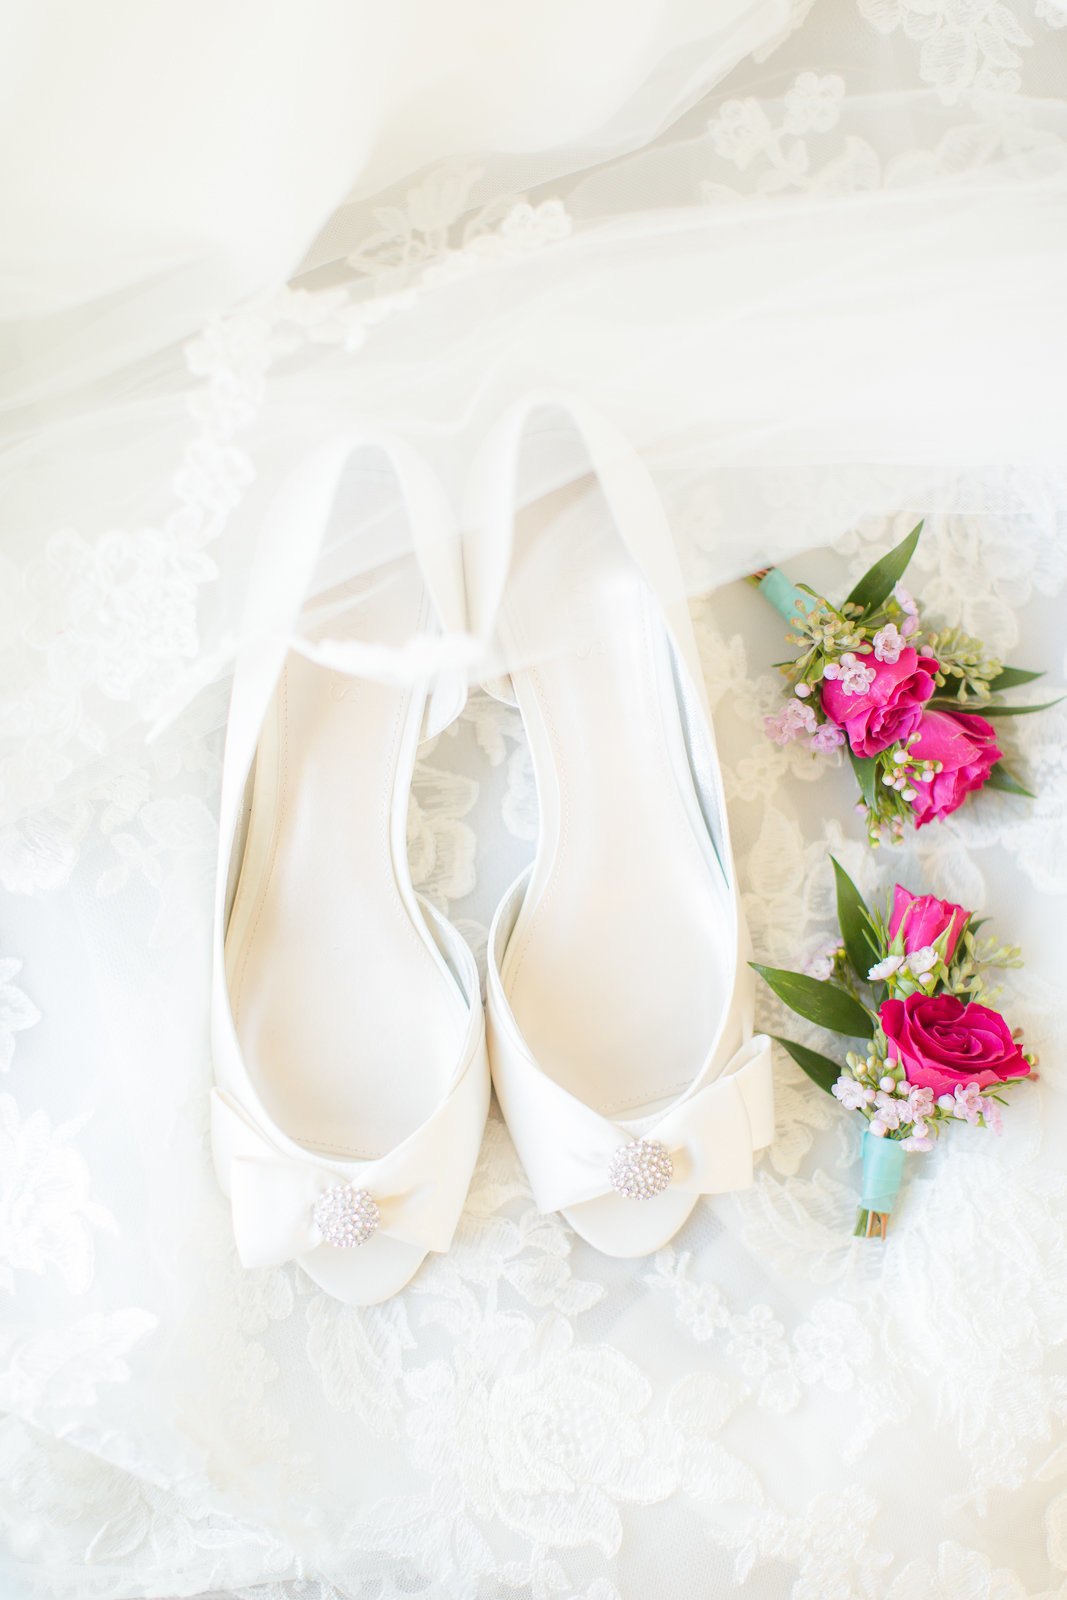 brides shoes high heels flowers details nature outdoor wedding colorado wedding romantic